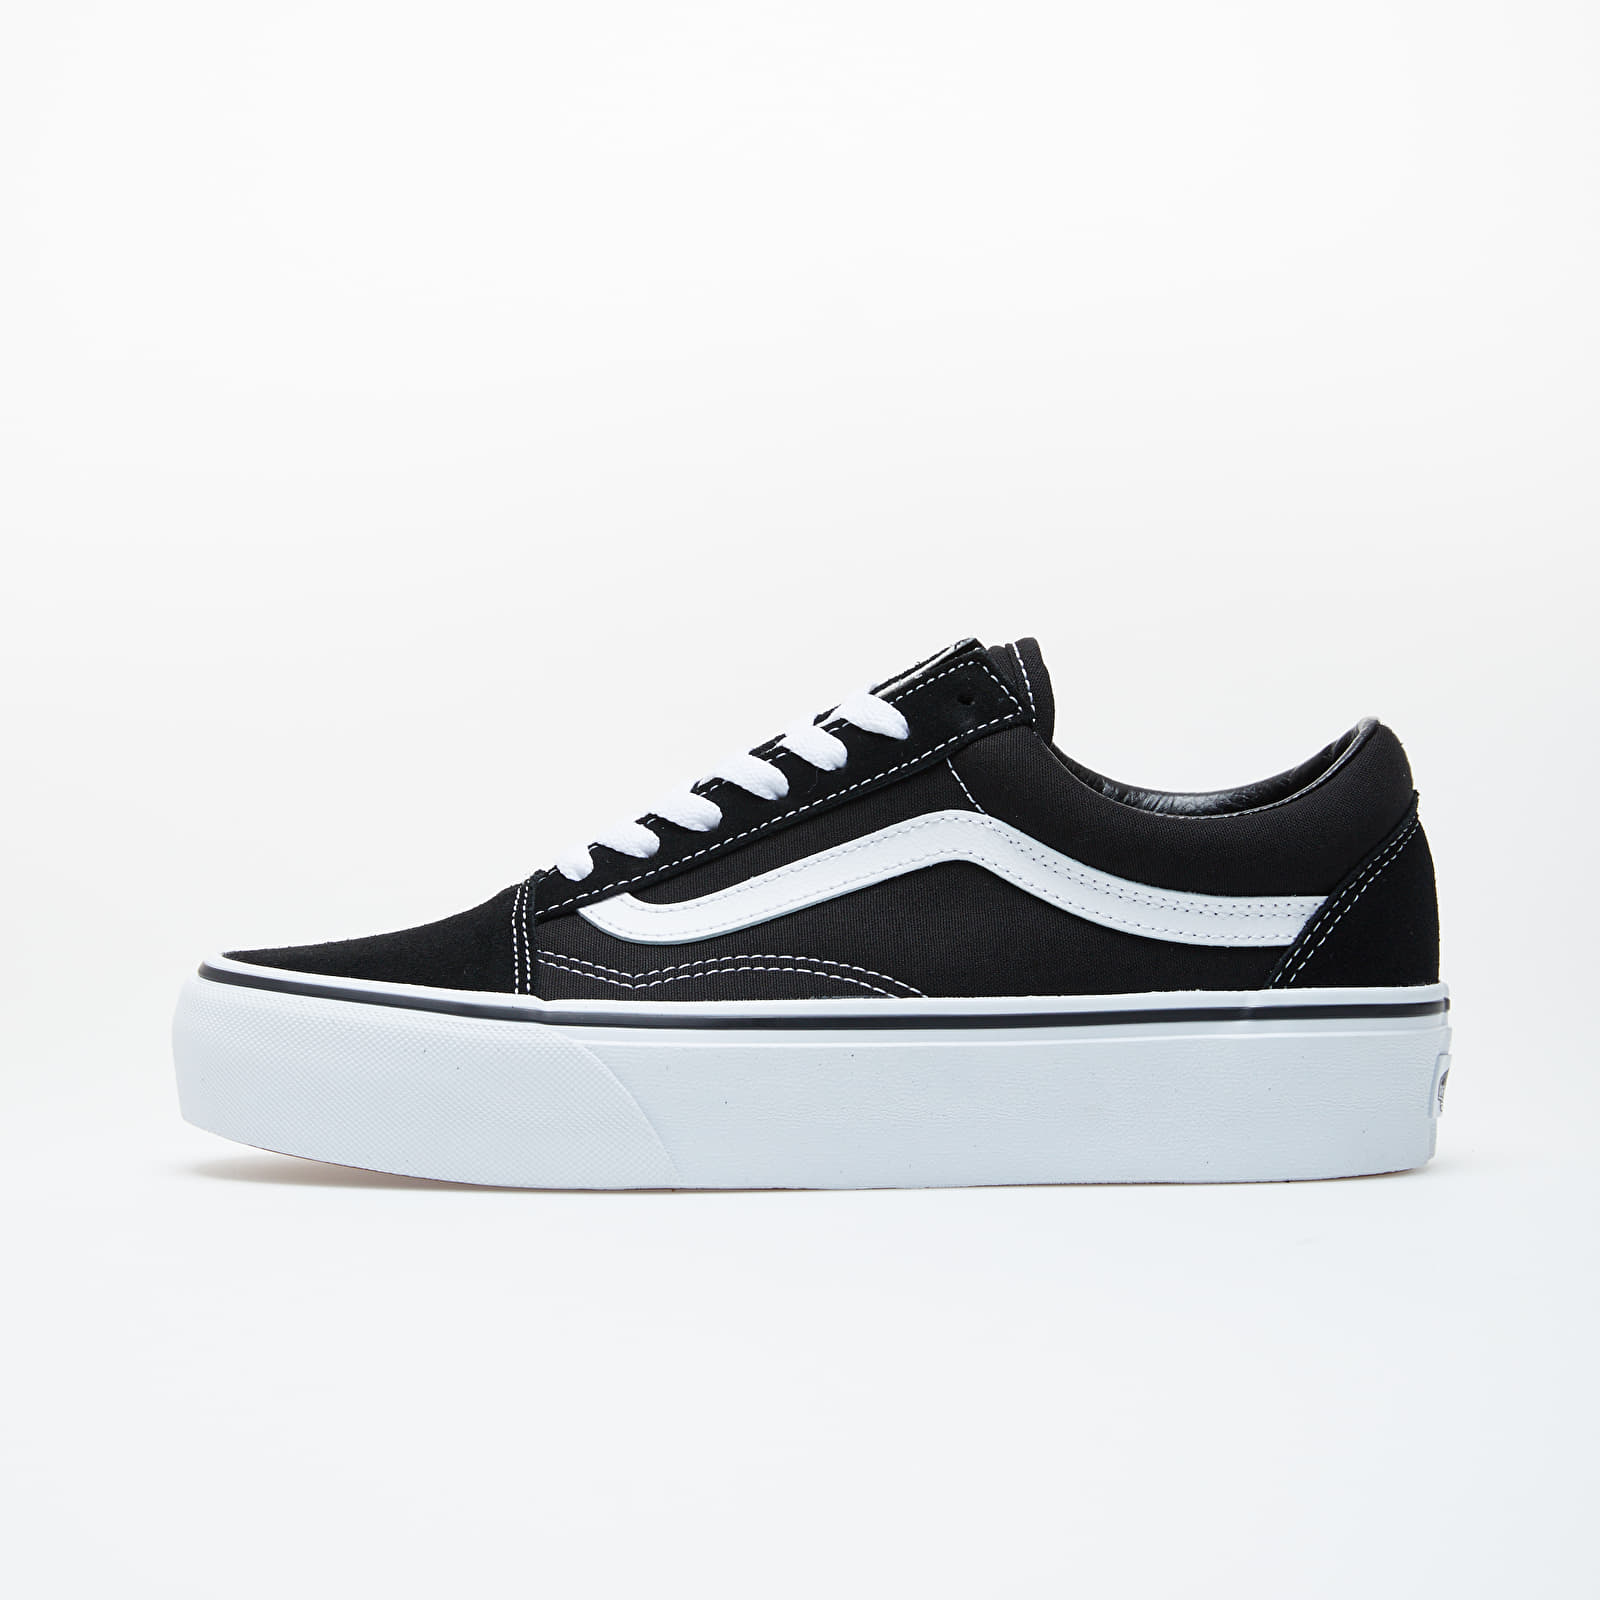 Women's shoes Vans Old Skool Platform Black/ White